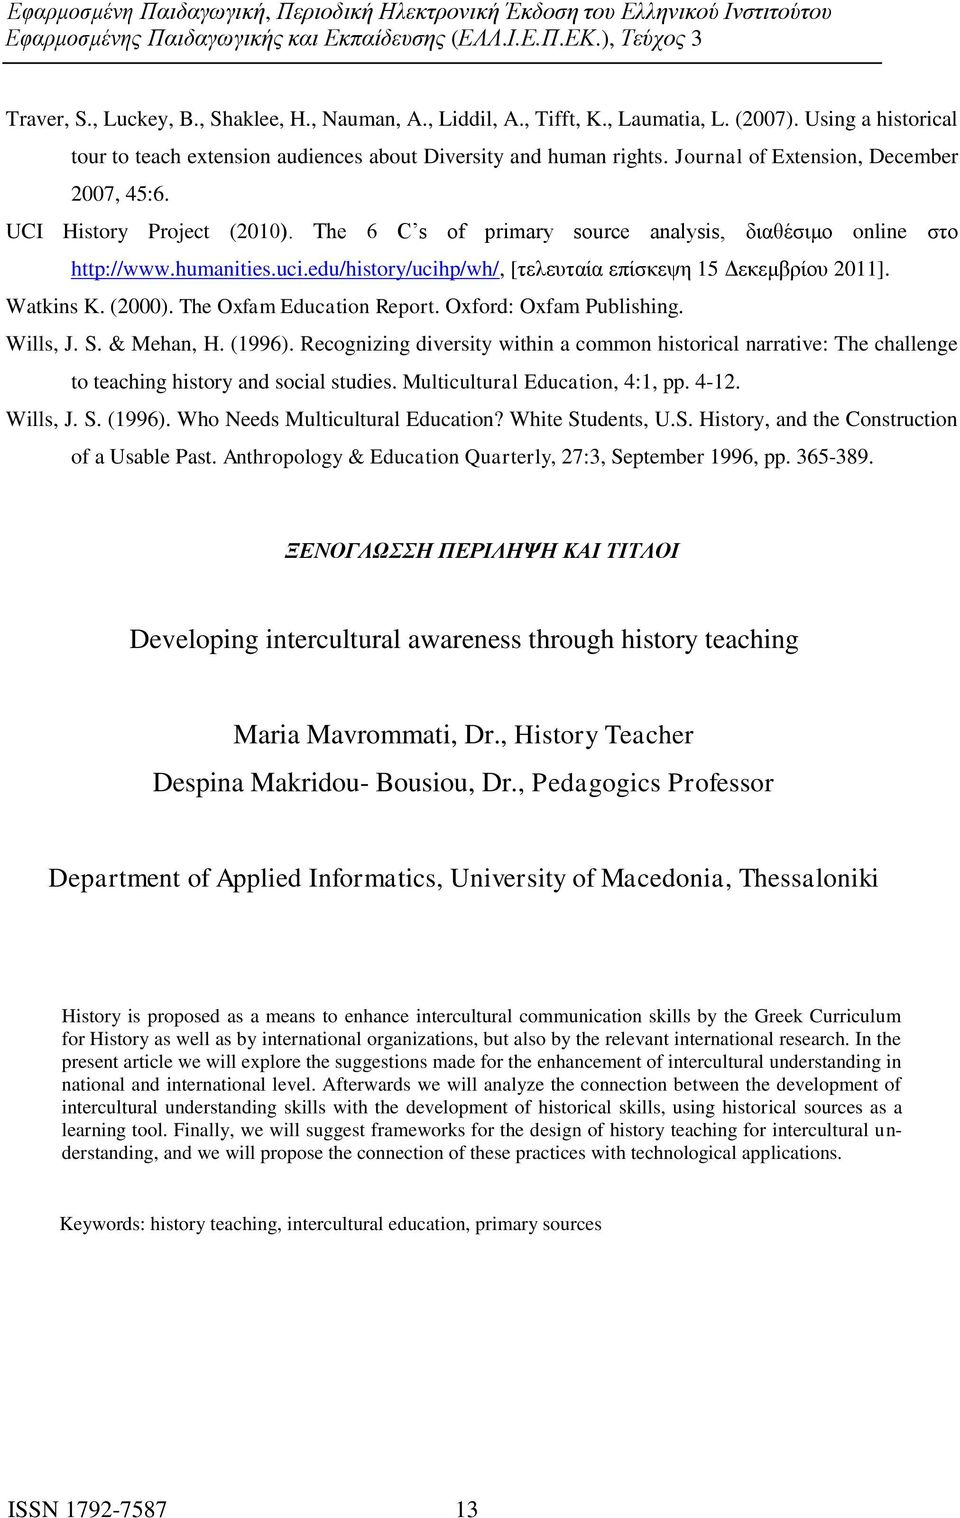 edu/history/ucihp/wh/, [τελευταία επίσκεψη 15 Δεκεμβρίου 2011]. Watkins K. (2000). The Oxfam Education Report. Oxford: Oxfam Publishing. Wills, J. S. & Mehan, H. (1996).